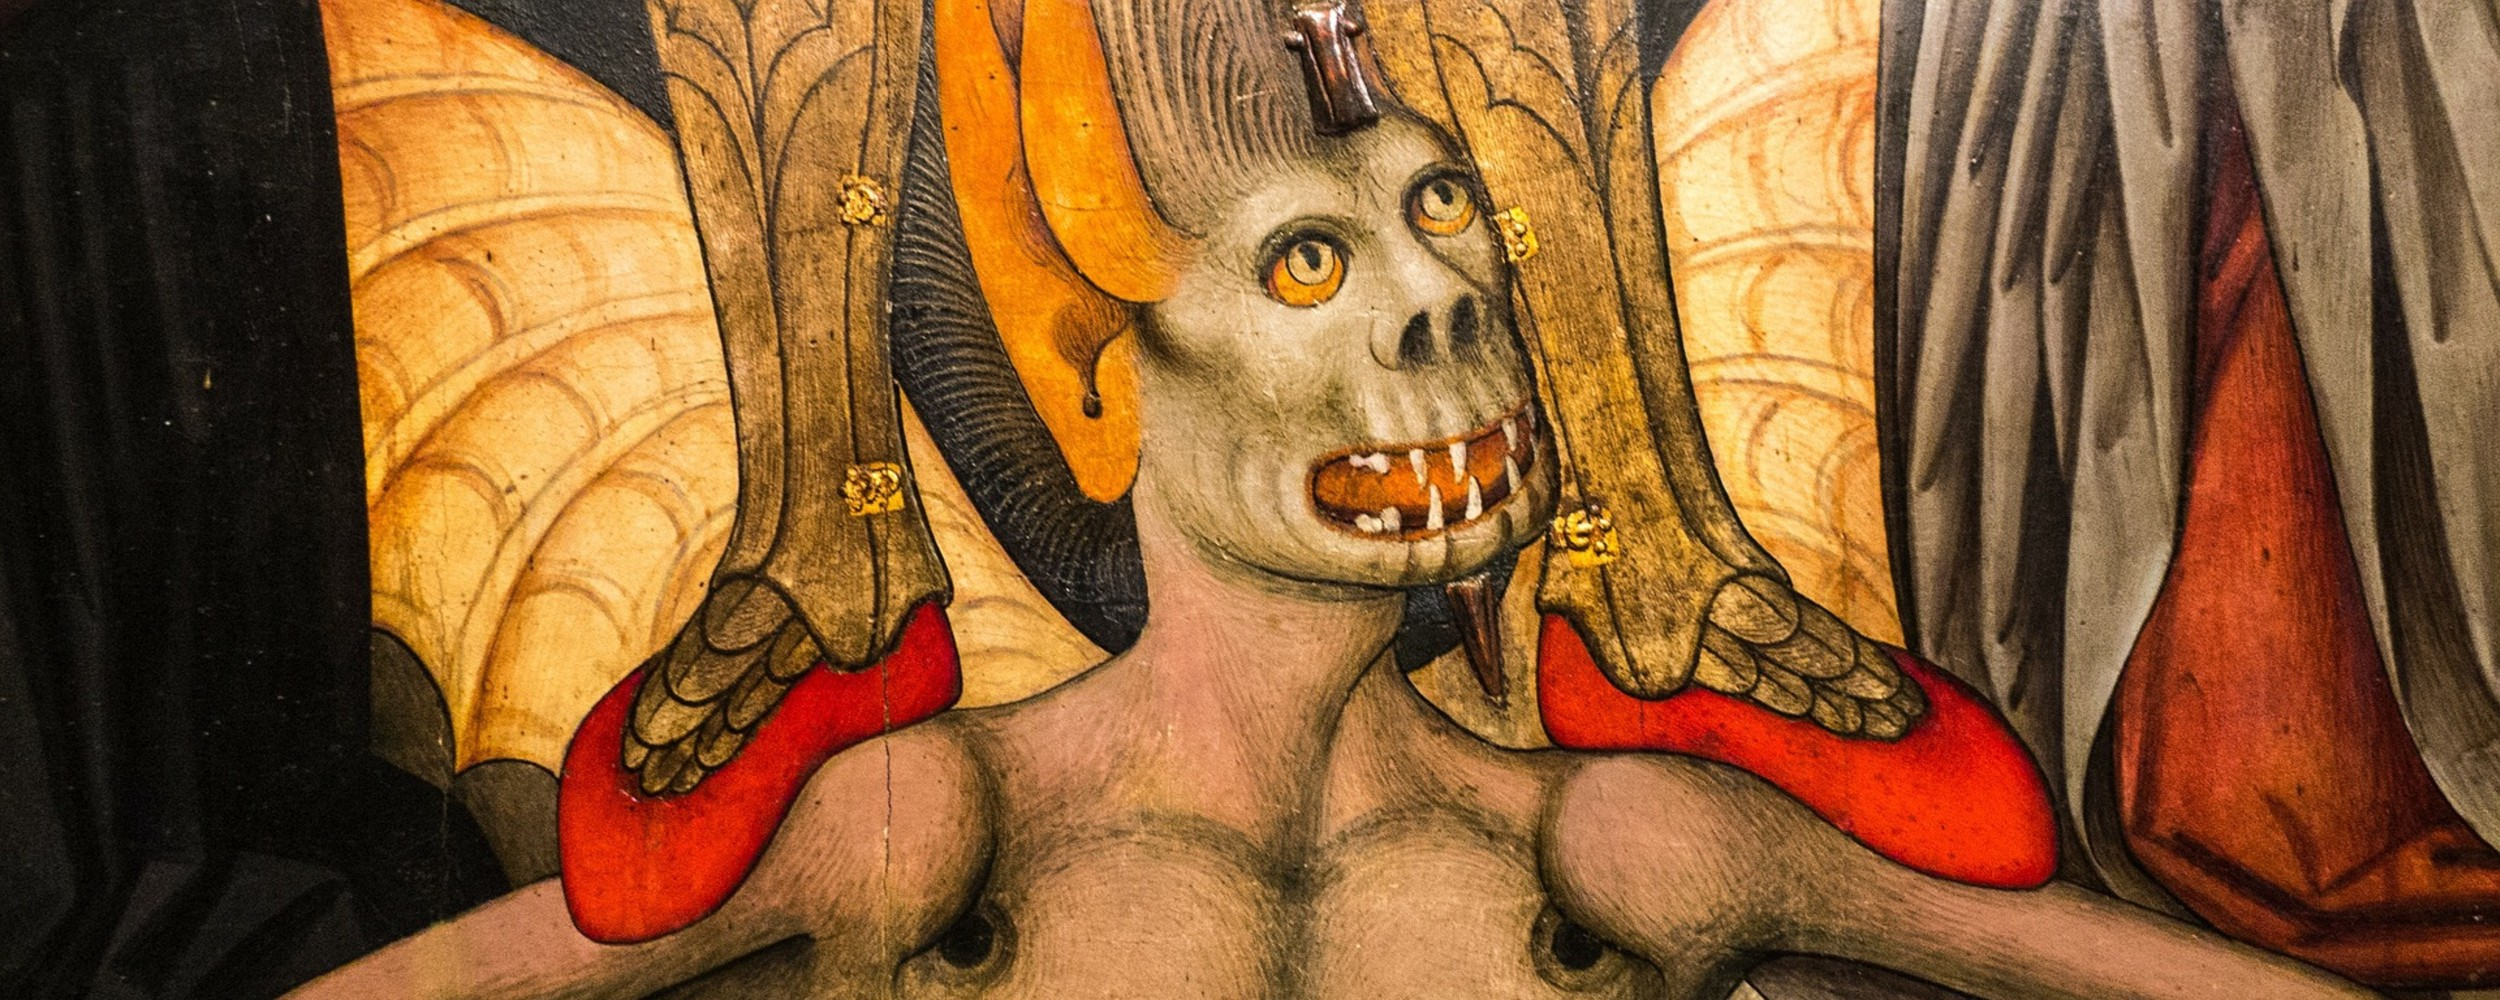 Select LinkedIn Posts for 2B2F Chemical, as Written by Its Public Relations Director, Mammon, Satan's Demon of Greed | by Mickey Hadick | How Pants Work | Medium